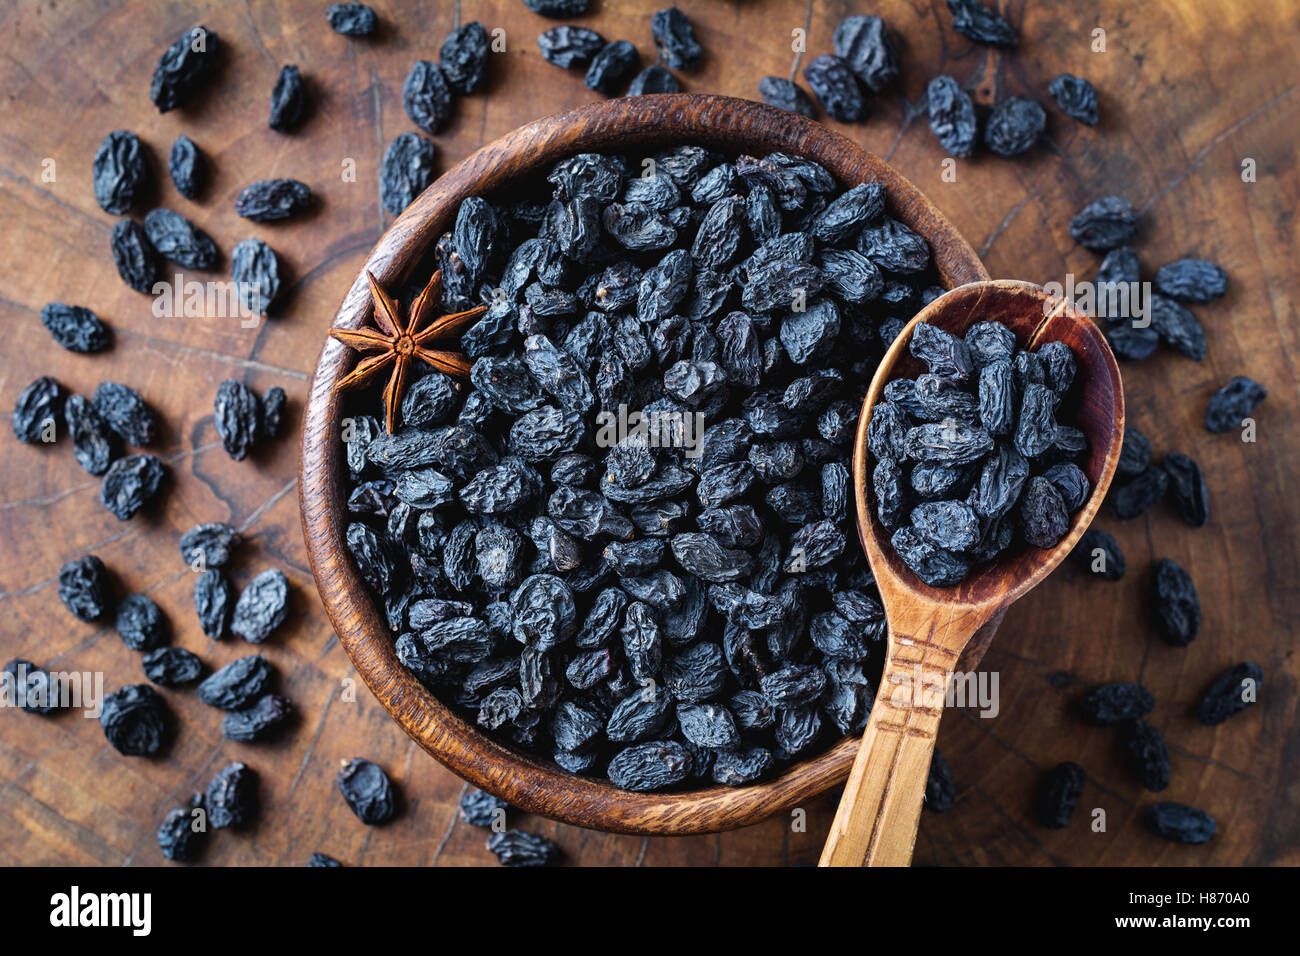 Black raisins in wooden bowl, top view. Healthy snack, dietary product for good life - Stock Image